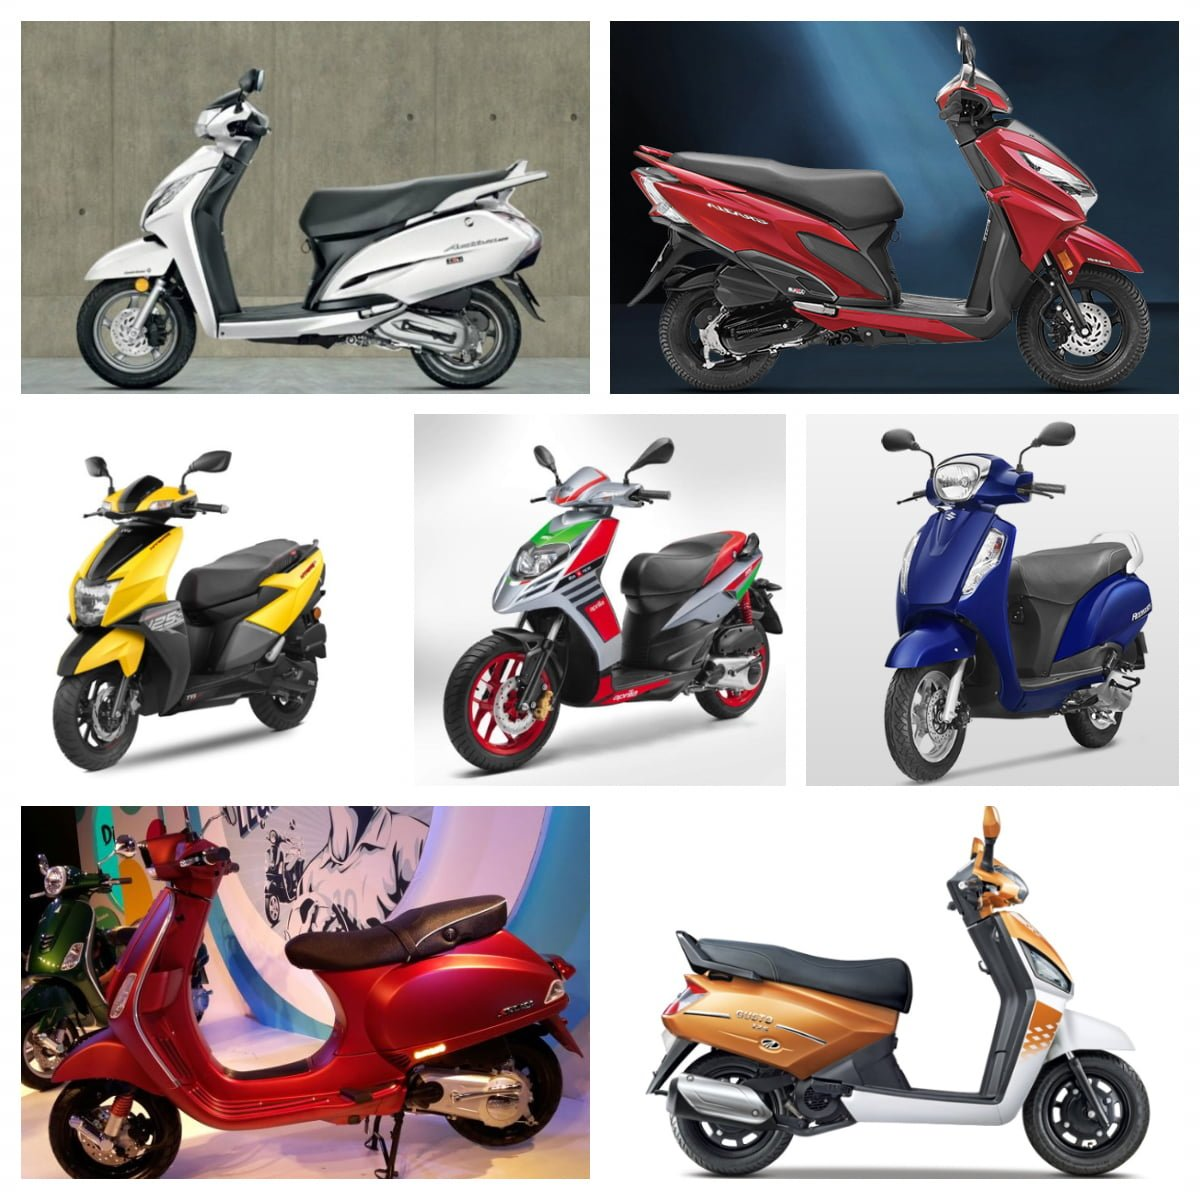 Best 125CC Scooters In India - Price, Specifications and Mileage